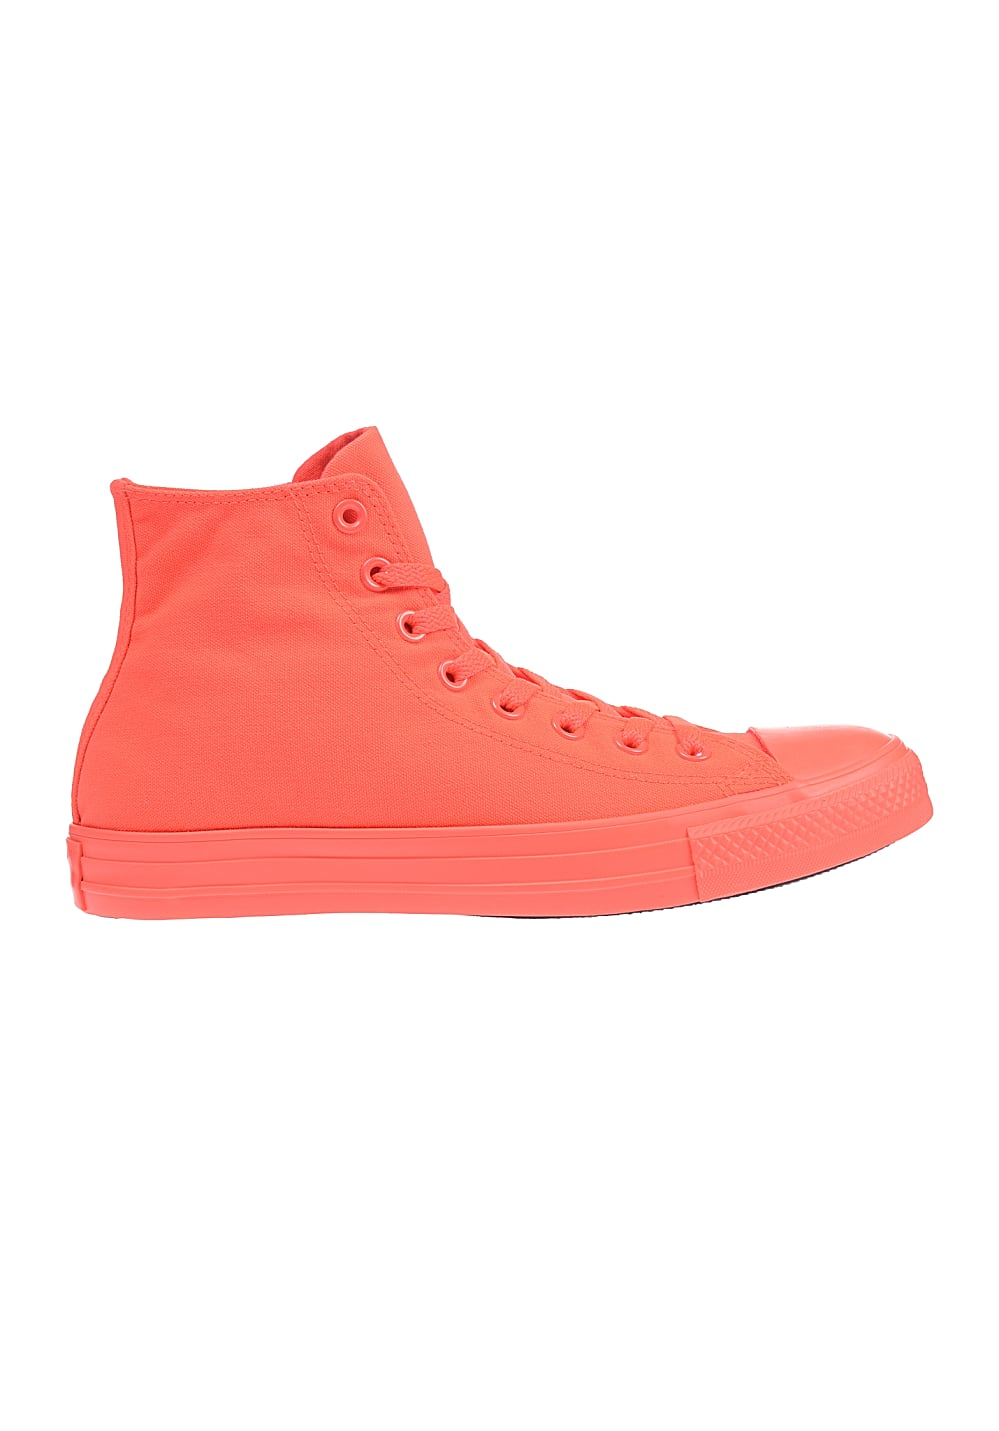 Converse Chuck Taylor All Star Hi Sneaker Orange